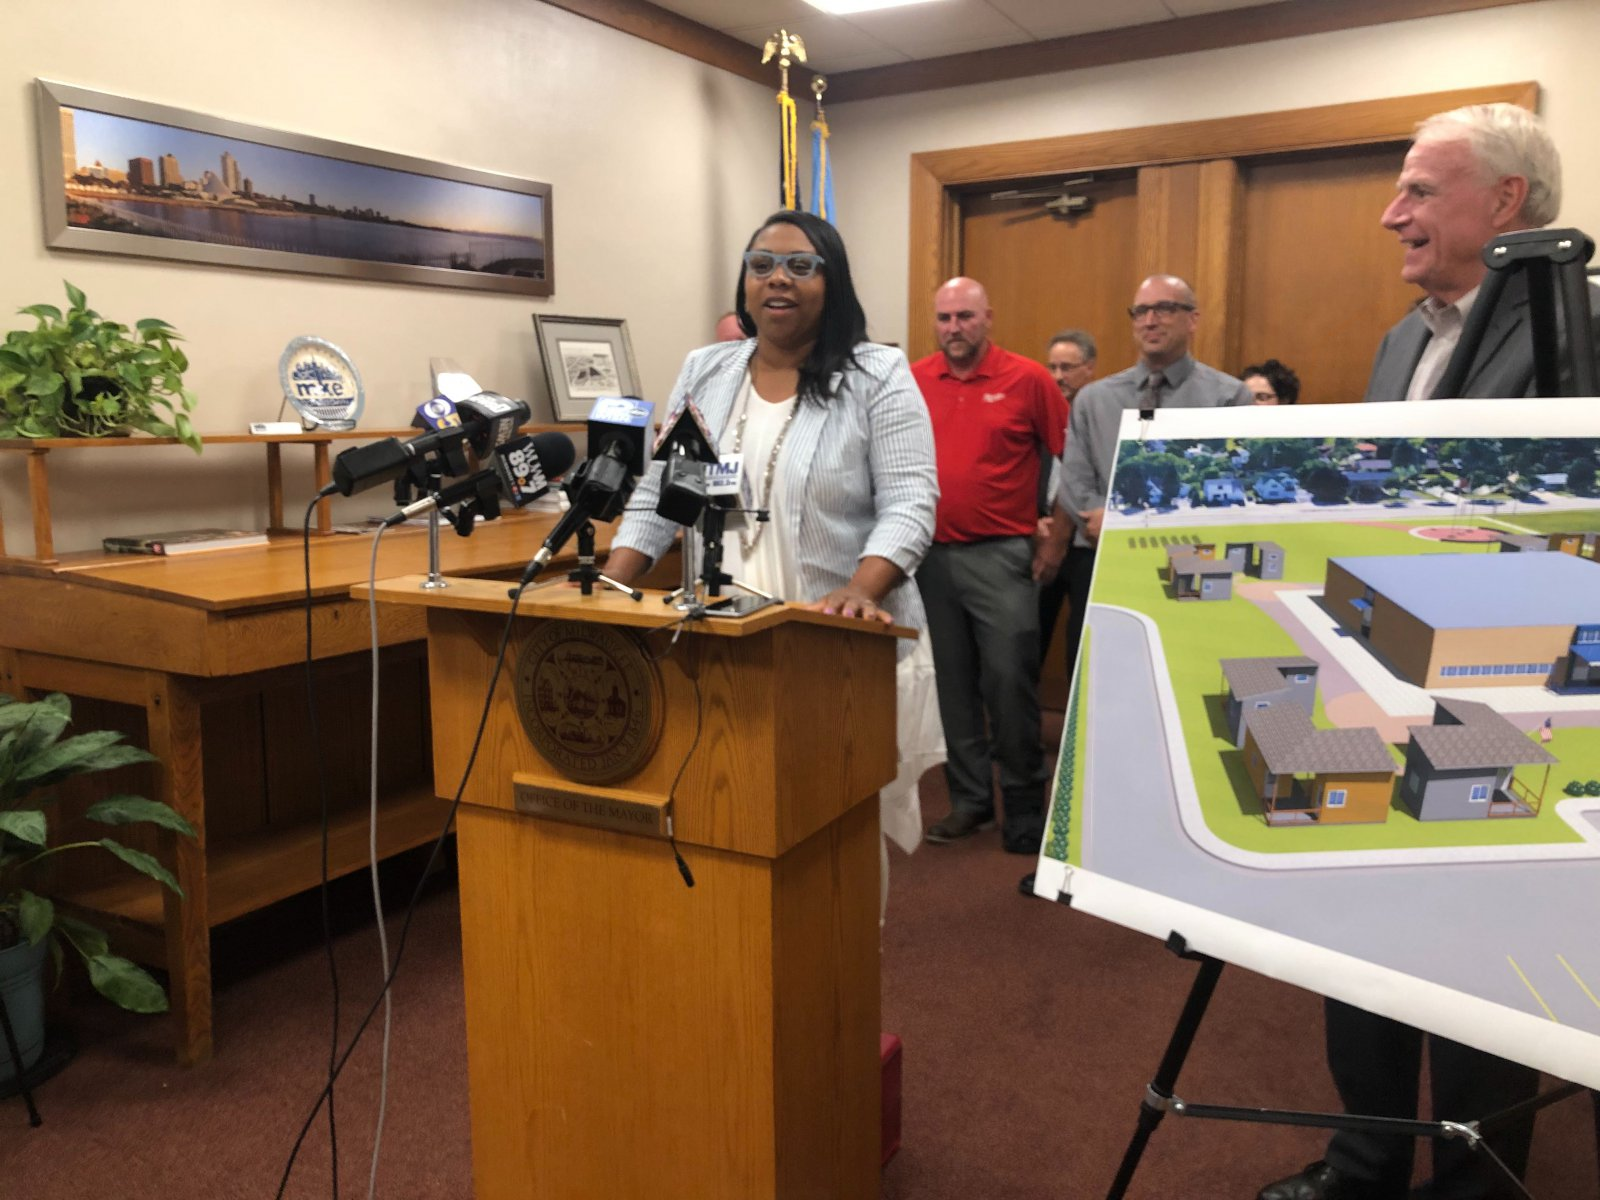 Chantia Lewis speaks at a 2019 press conference on tiny homes for veterans. Photo by Jeramey Jannene.